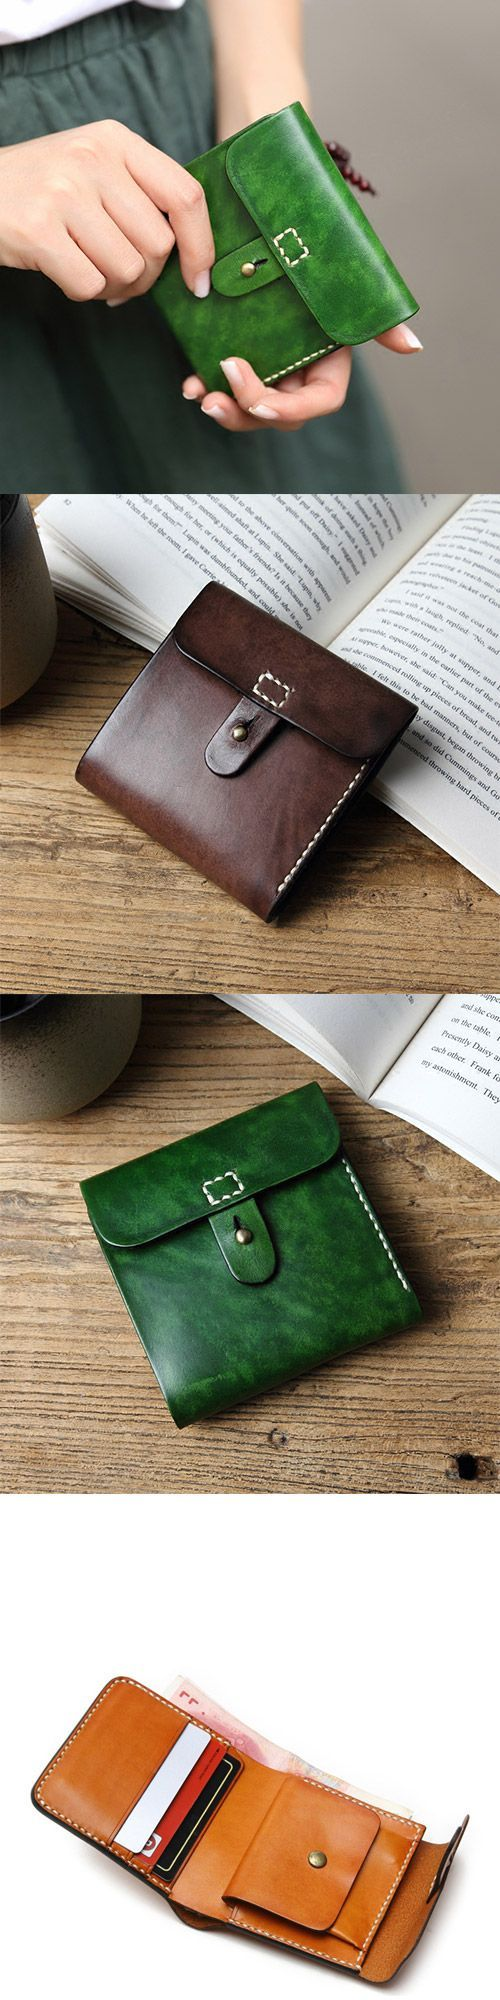 Handmade leather vintage women short wallet purse wallet - leather ladies purse, cute summer purses, designer handbags online *sponsored https://www.pinterest.com/purses_handbags/ https://www.pinterest.com/explore/handbag/ https://www.pinterest.com/purses_handbags/clutch-purse/ http://www.polyvore.com/handbags/shop?category_id=318